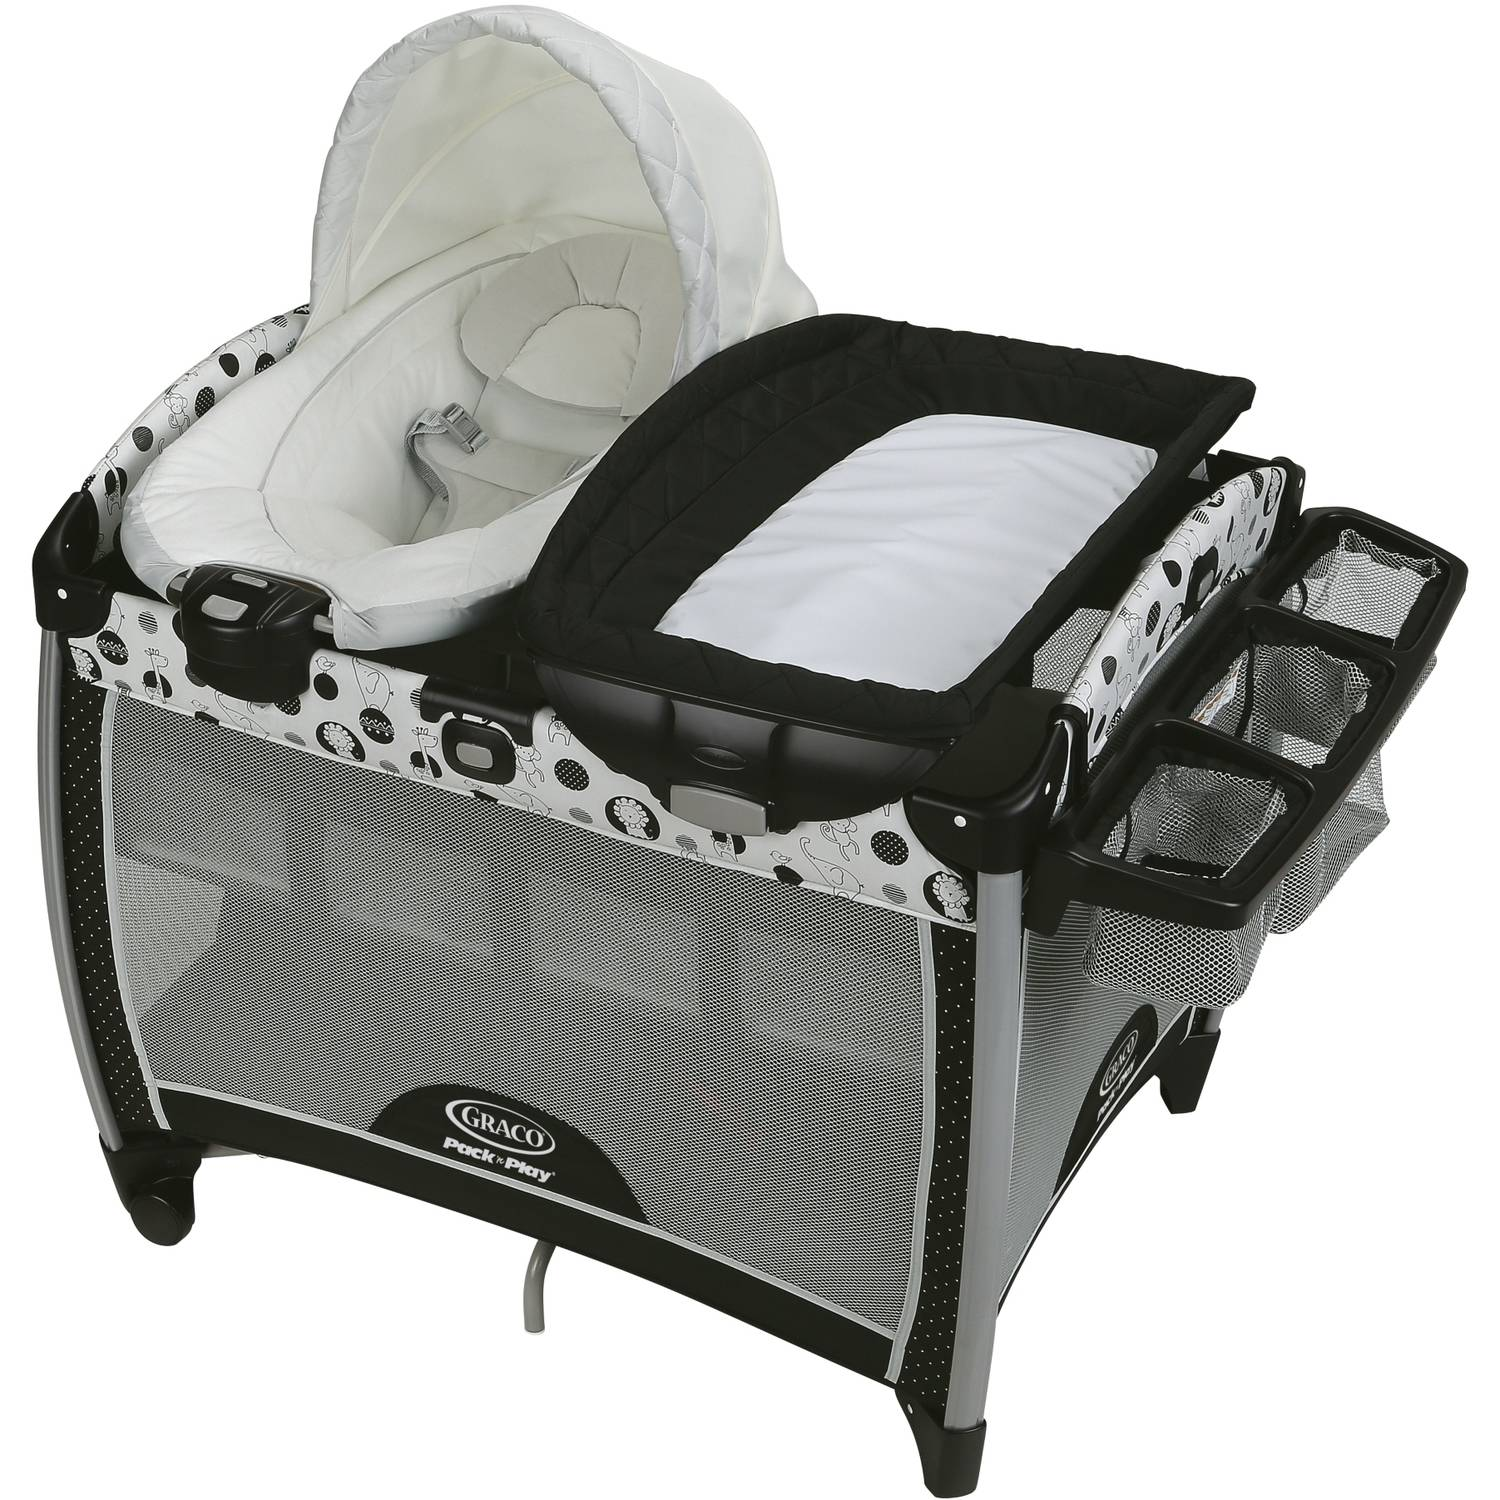 Graco Pack 'n Play Quick Connect Portable Bouncer Playard with Bassinet, Balancing Act